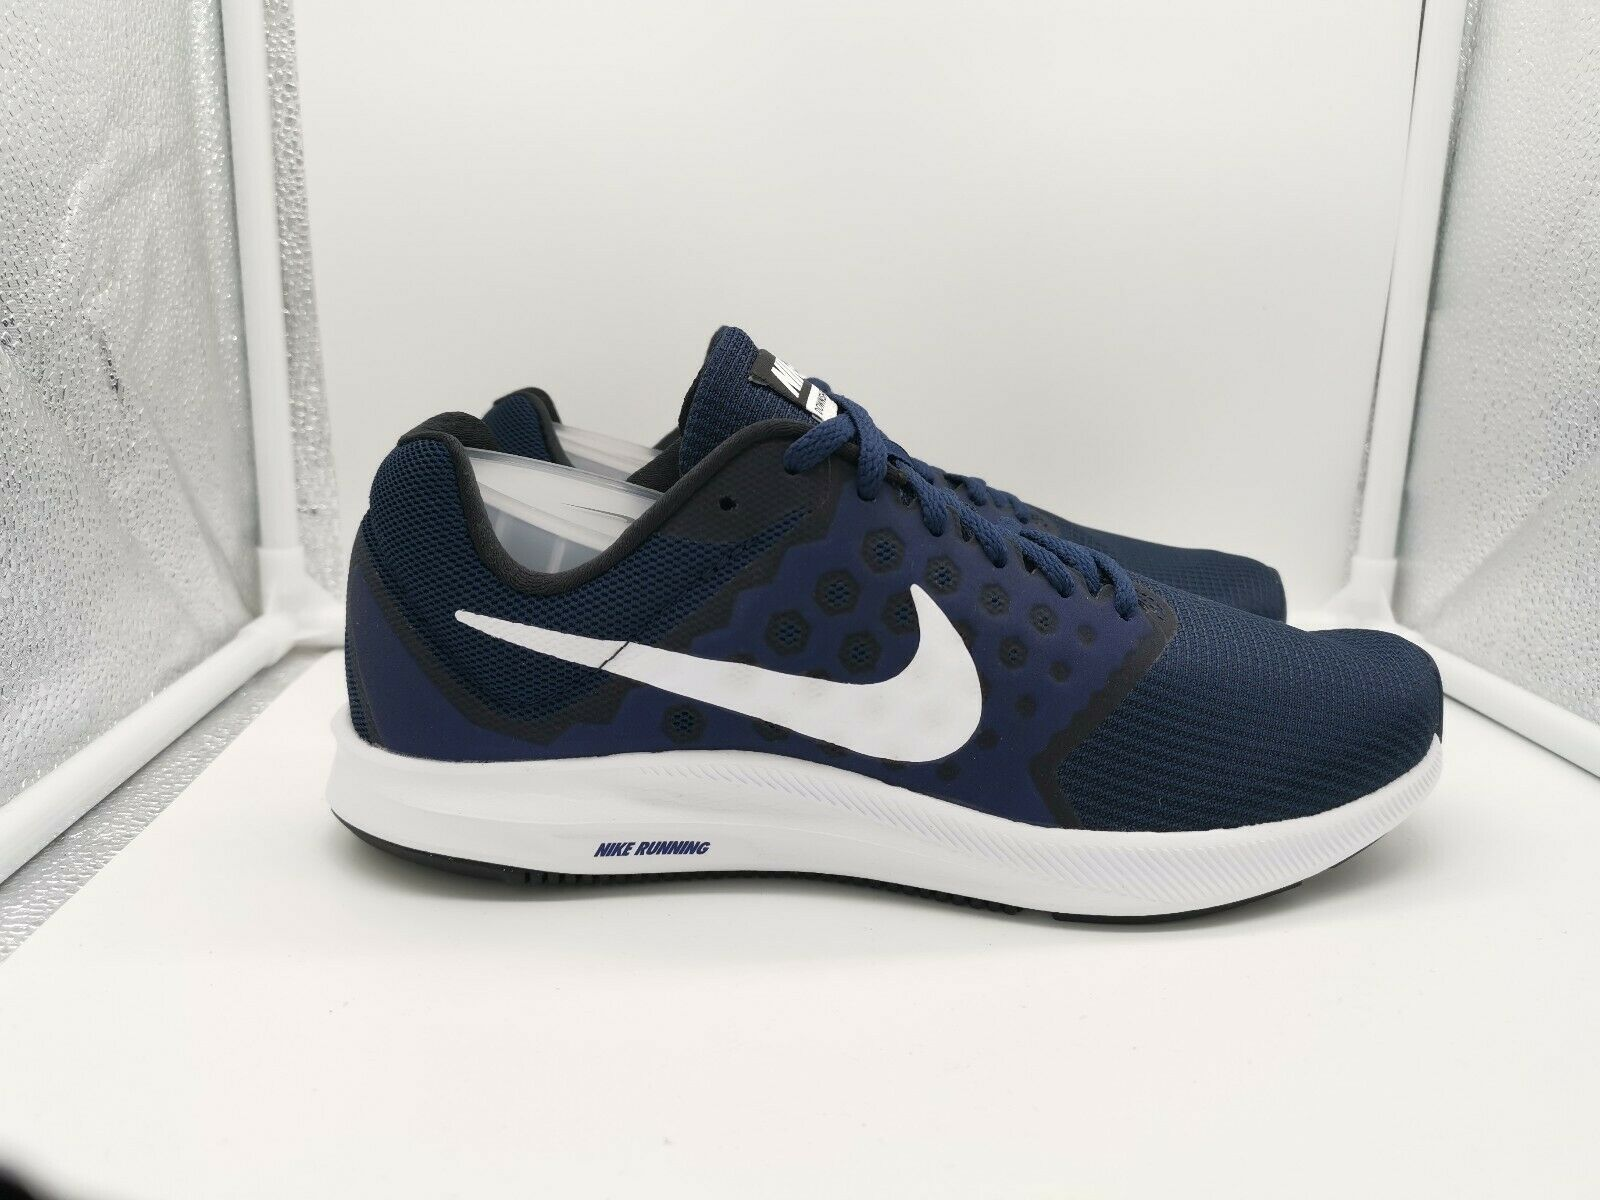 Nike Downshifter 7 UK 7.5 Midnight Navy Weiß 852459-400